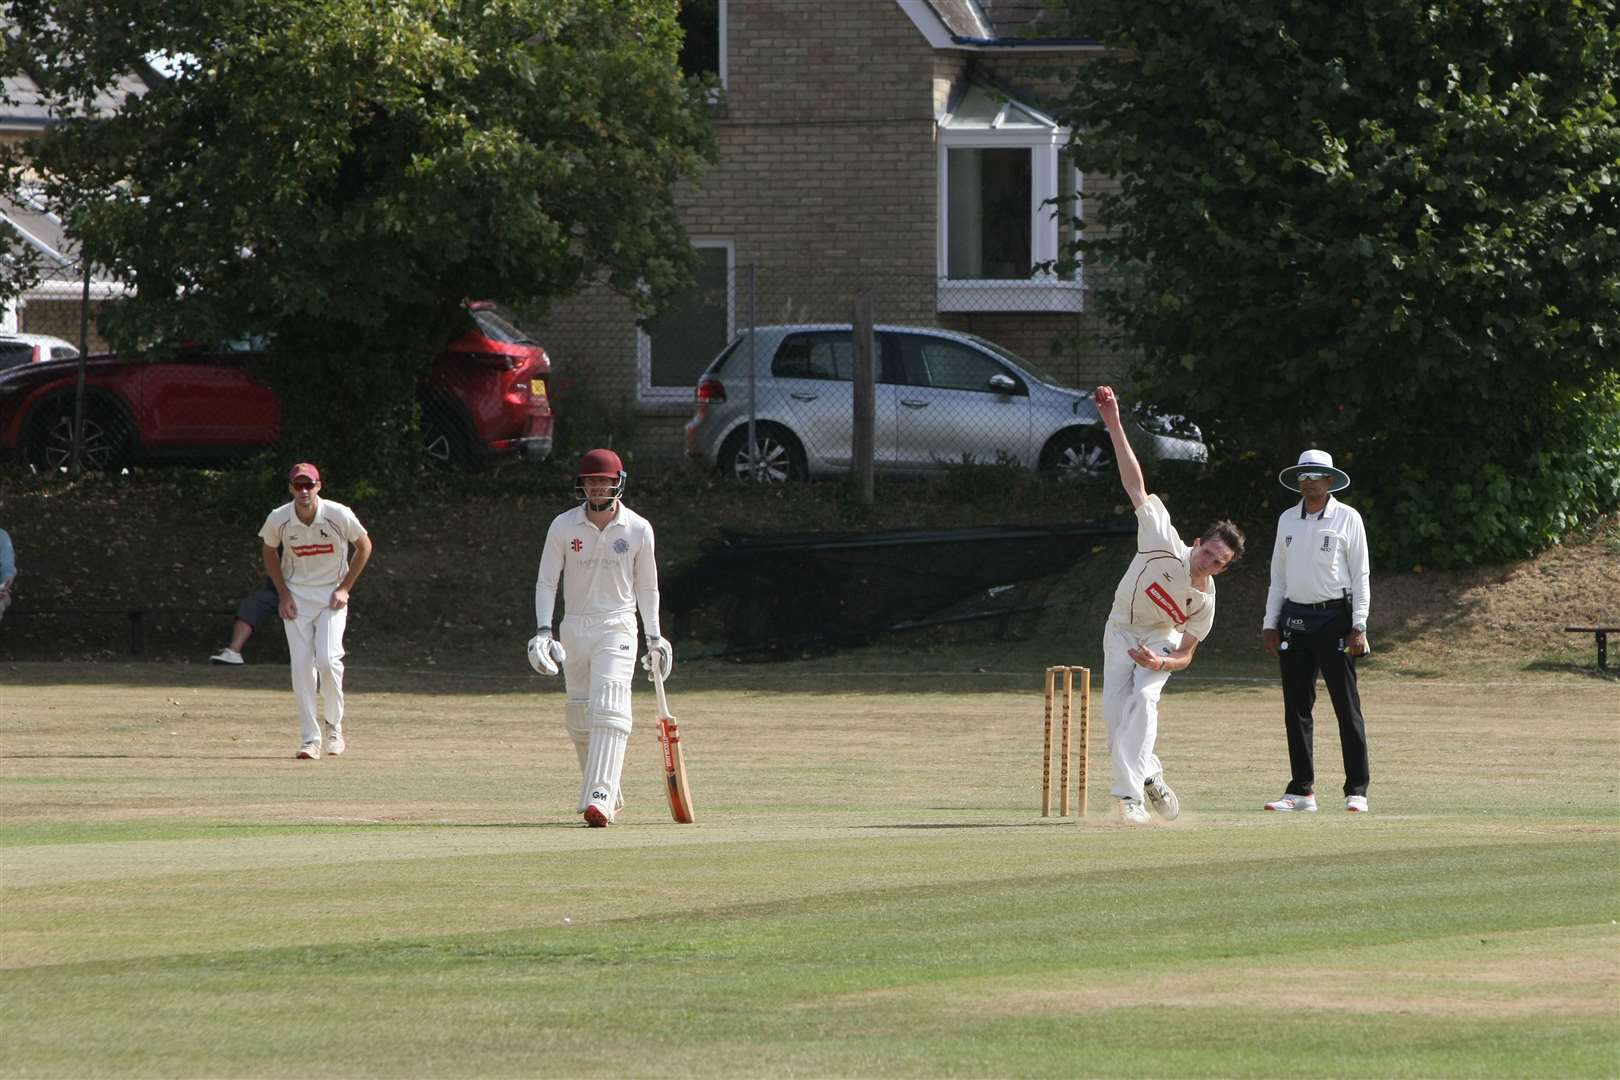 Sudbury v Swardeston cricket action. Patrick SSaddler bowling for Sudbury.. (15968446)